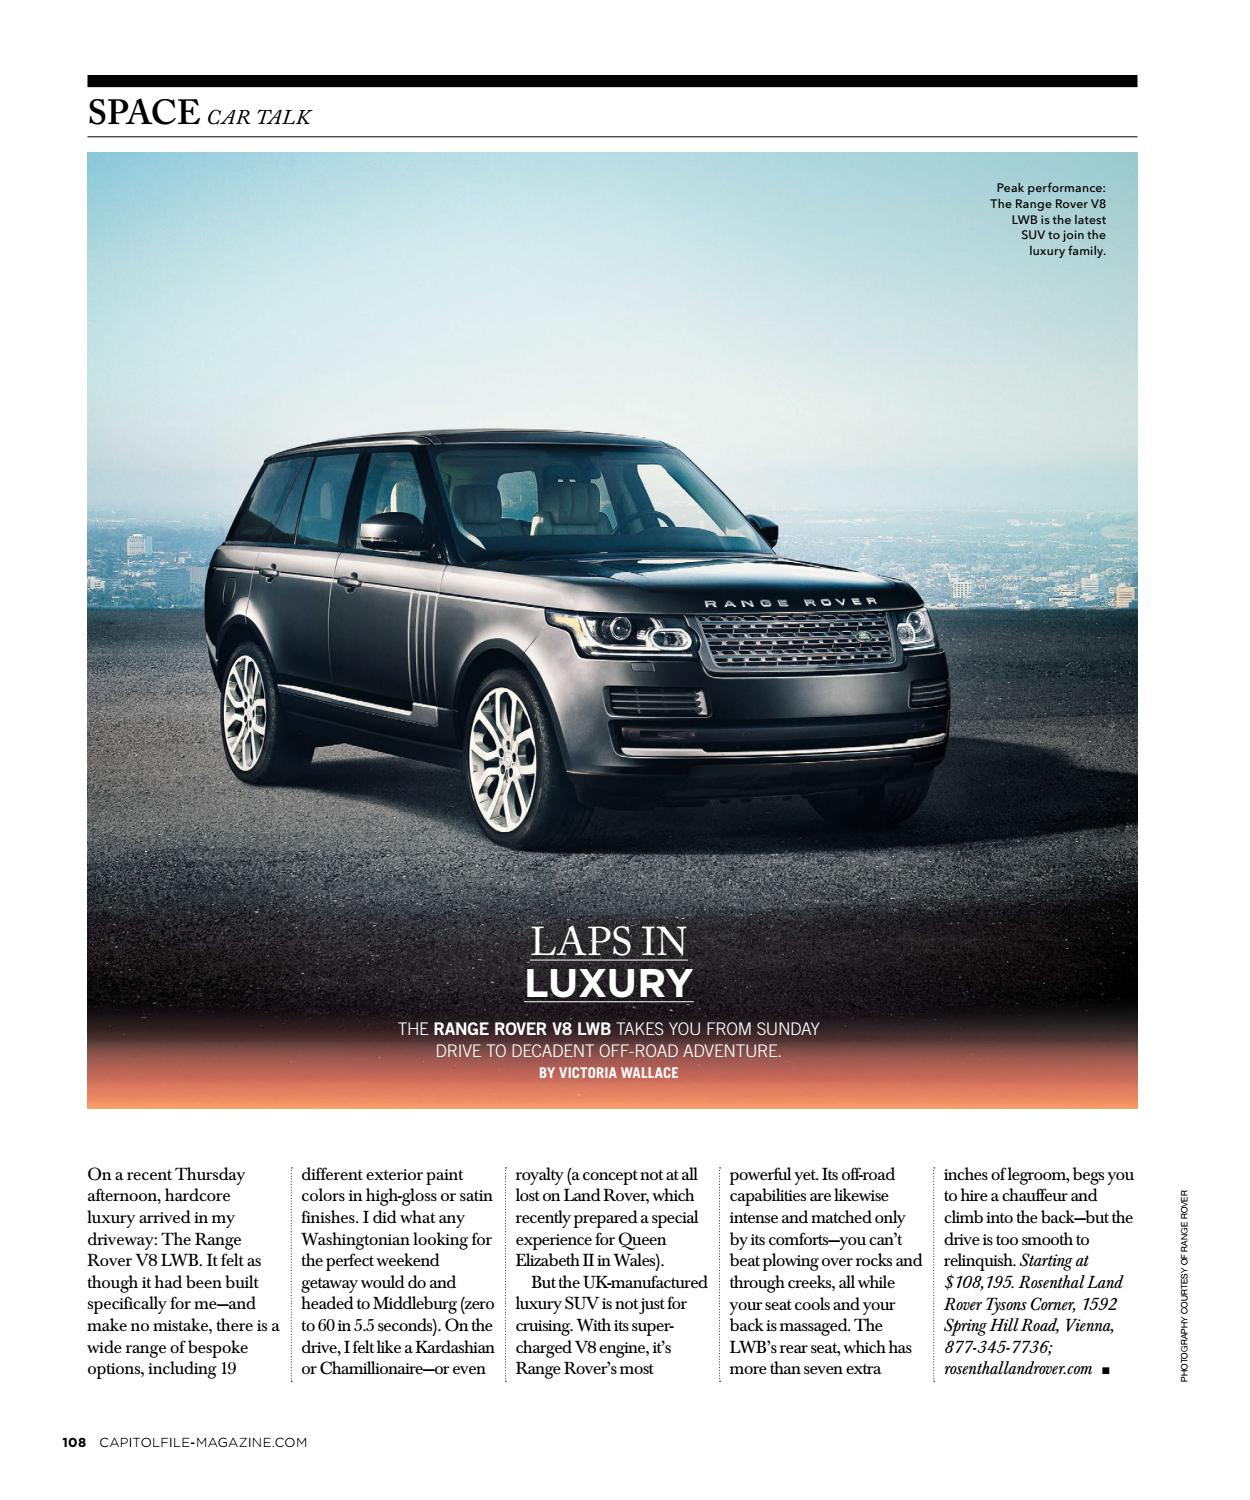 Rosenthal Land Rover >> Capitol File 2016 Issue 6 Winter Welcome Mr